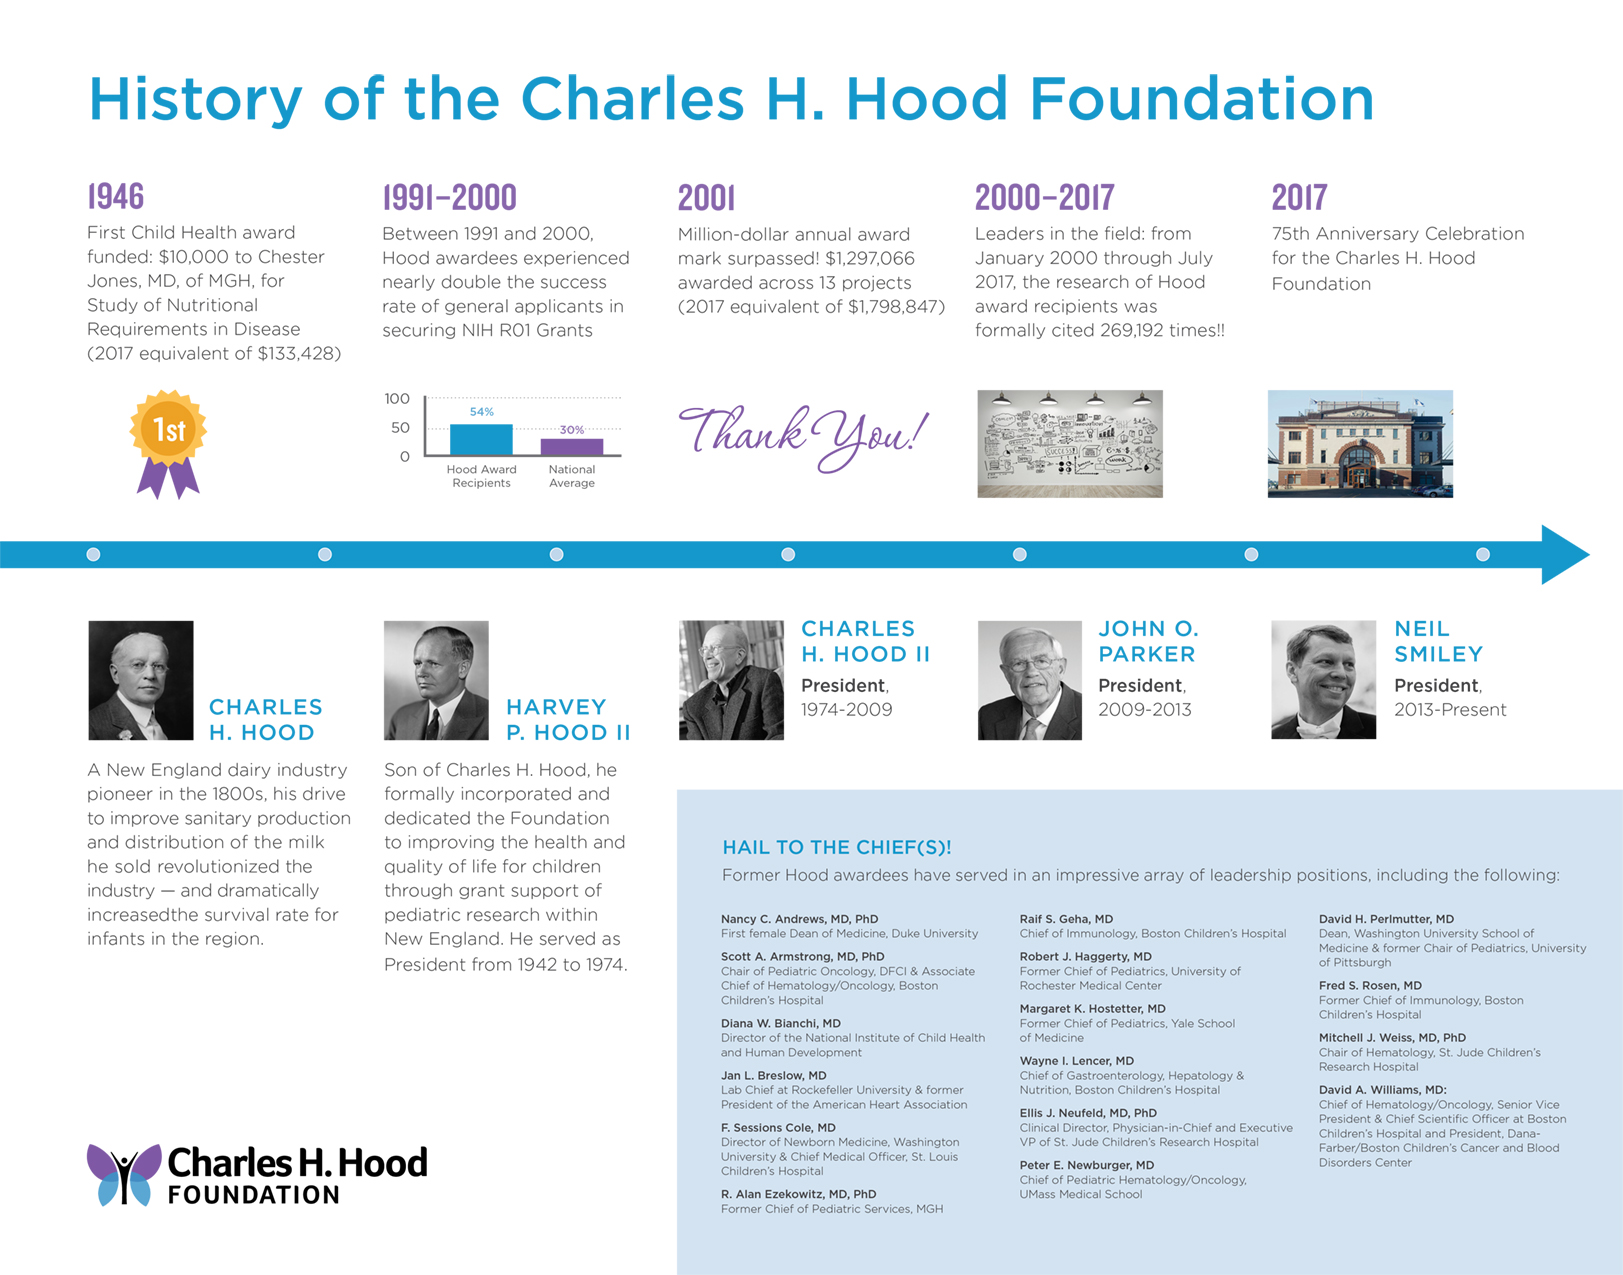 Timeline History of Charles H Hood Foundation, 1946 to 2017